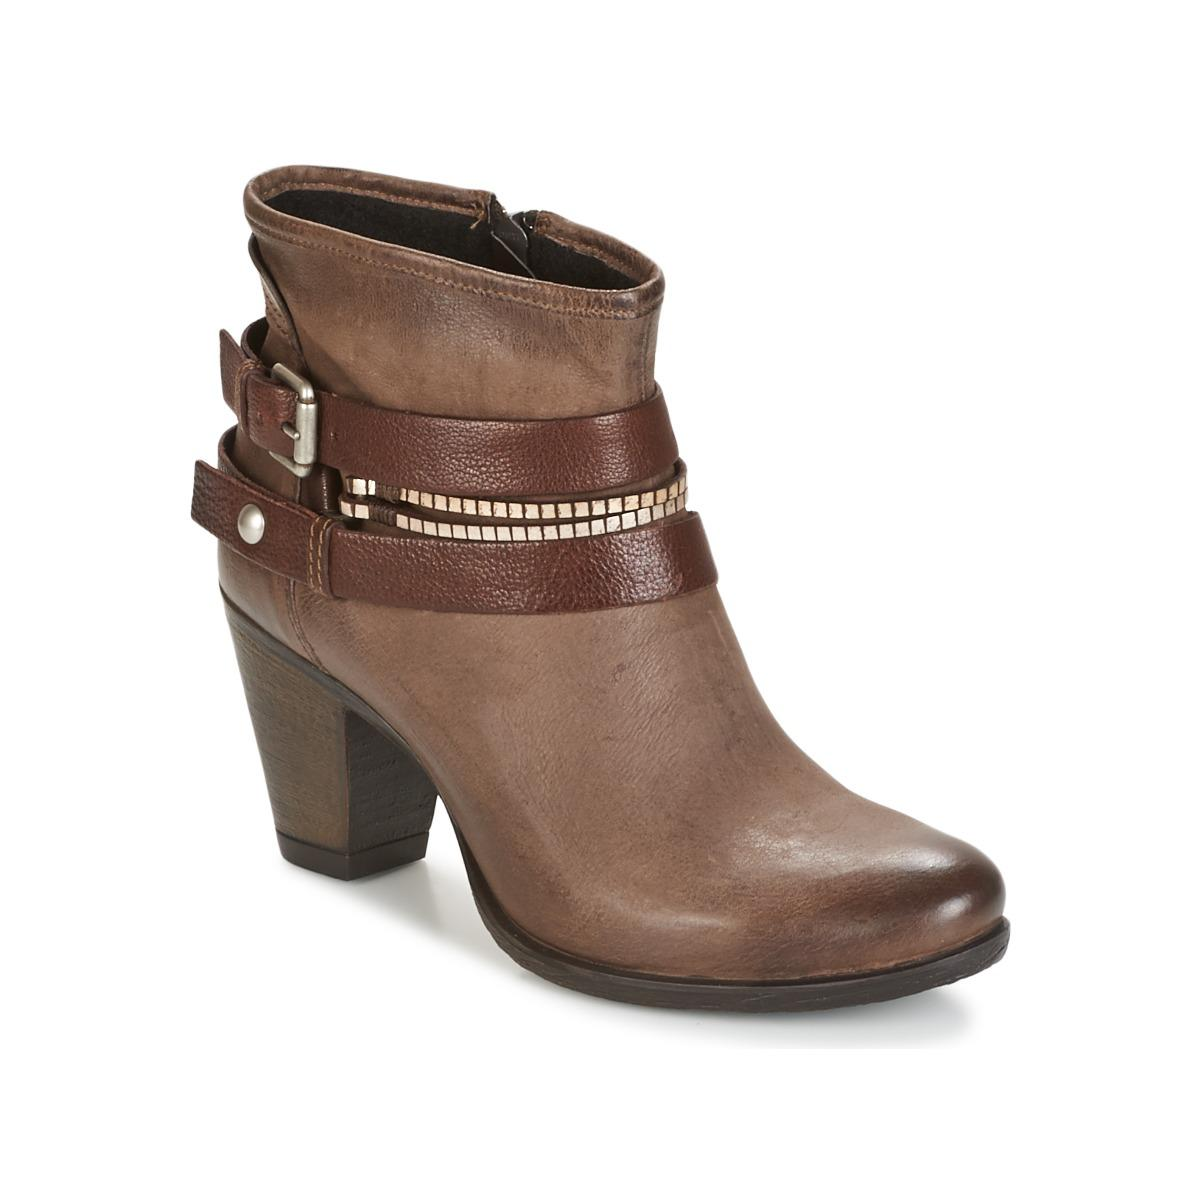 Dream in Green GIAVOLO women's Low Ankle Boots in Sale Websites Free Shipping 100% Guaranteed CRFTe4tiKt